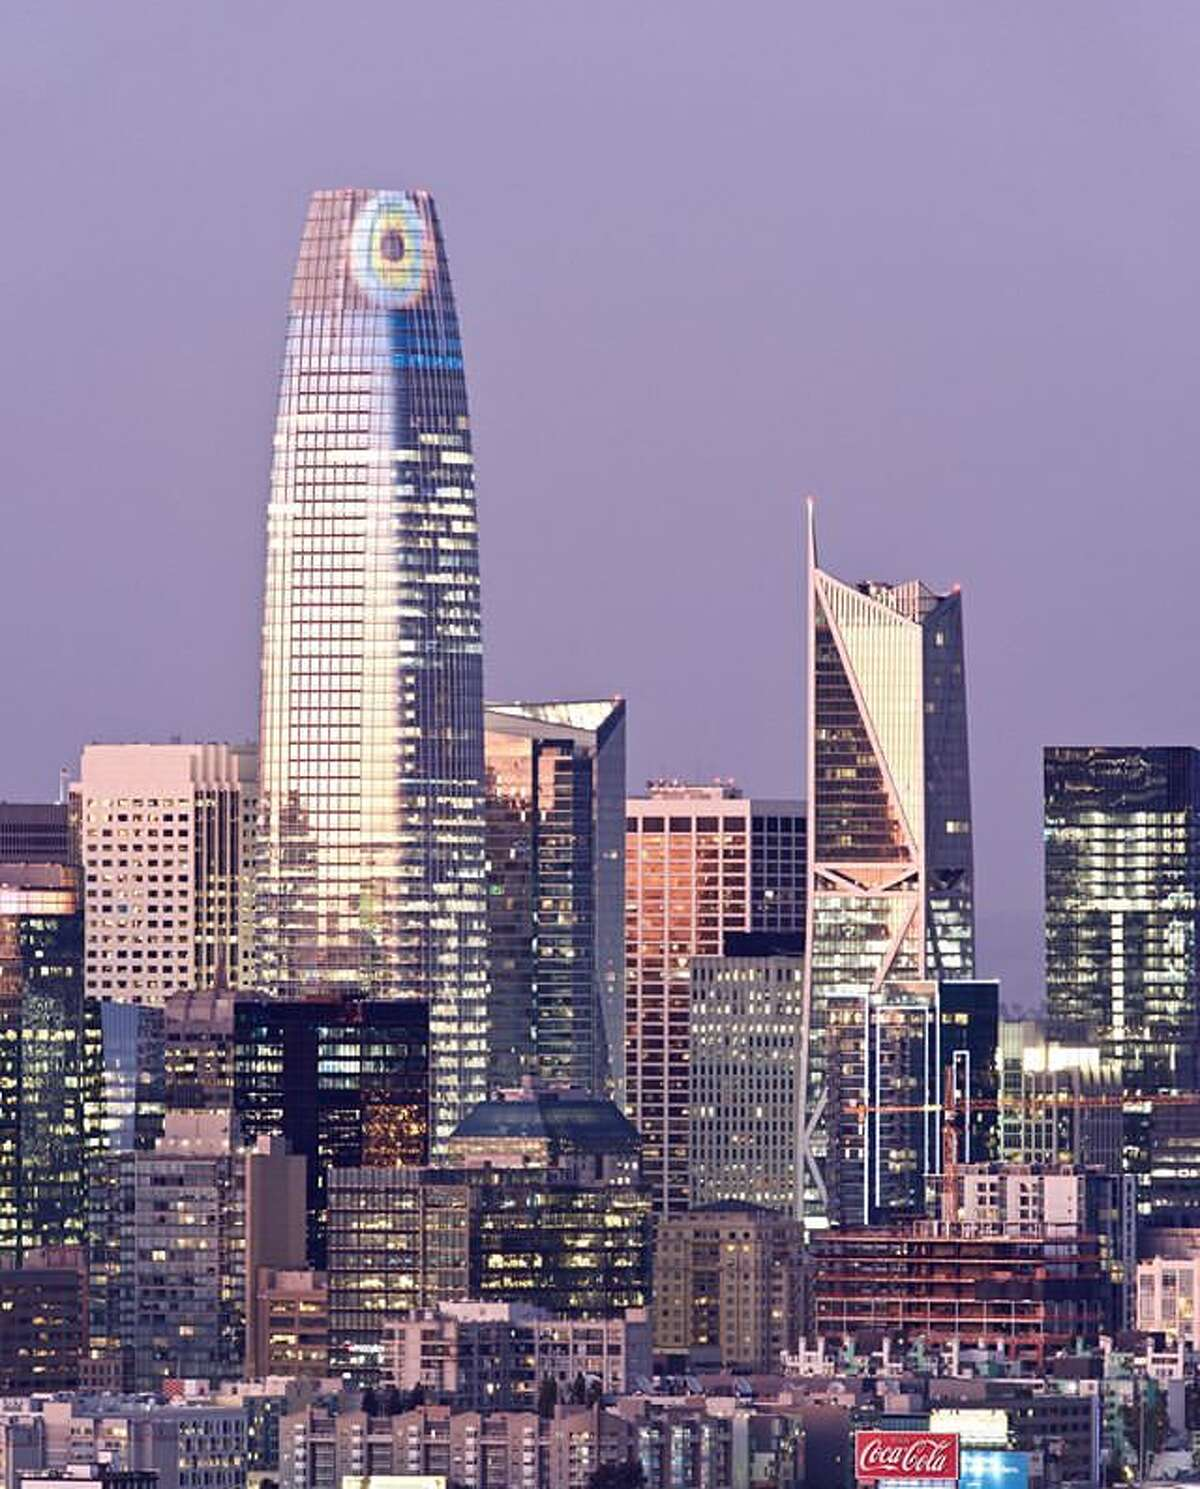 The top of Salesforce Tower was turned into the Eye of Sauron on Halloween. Photo by @mattqnielsen